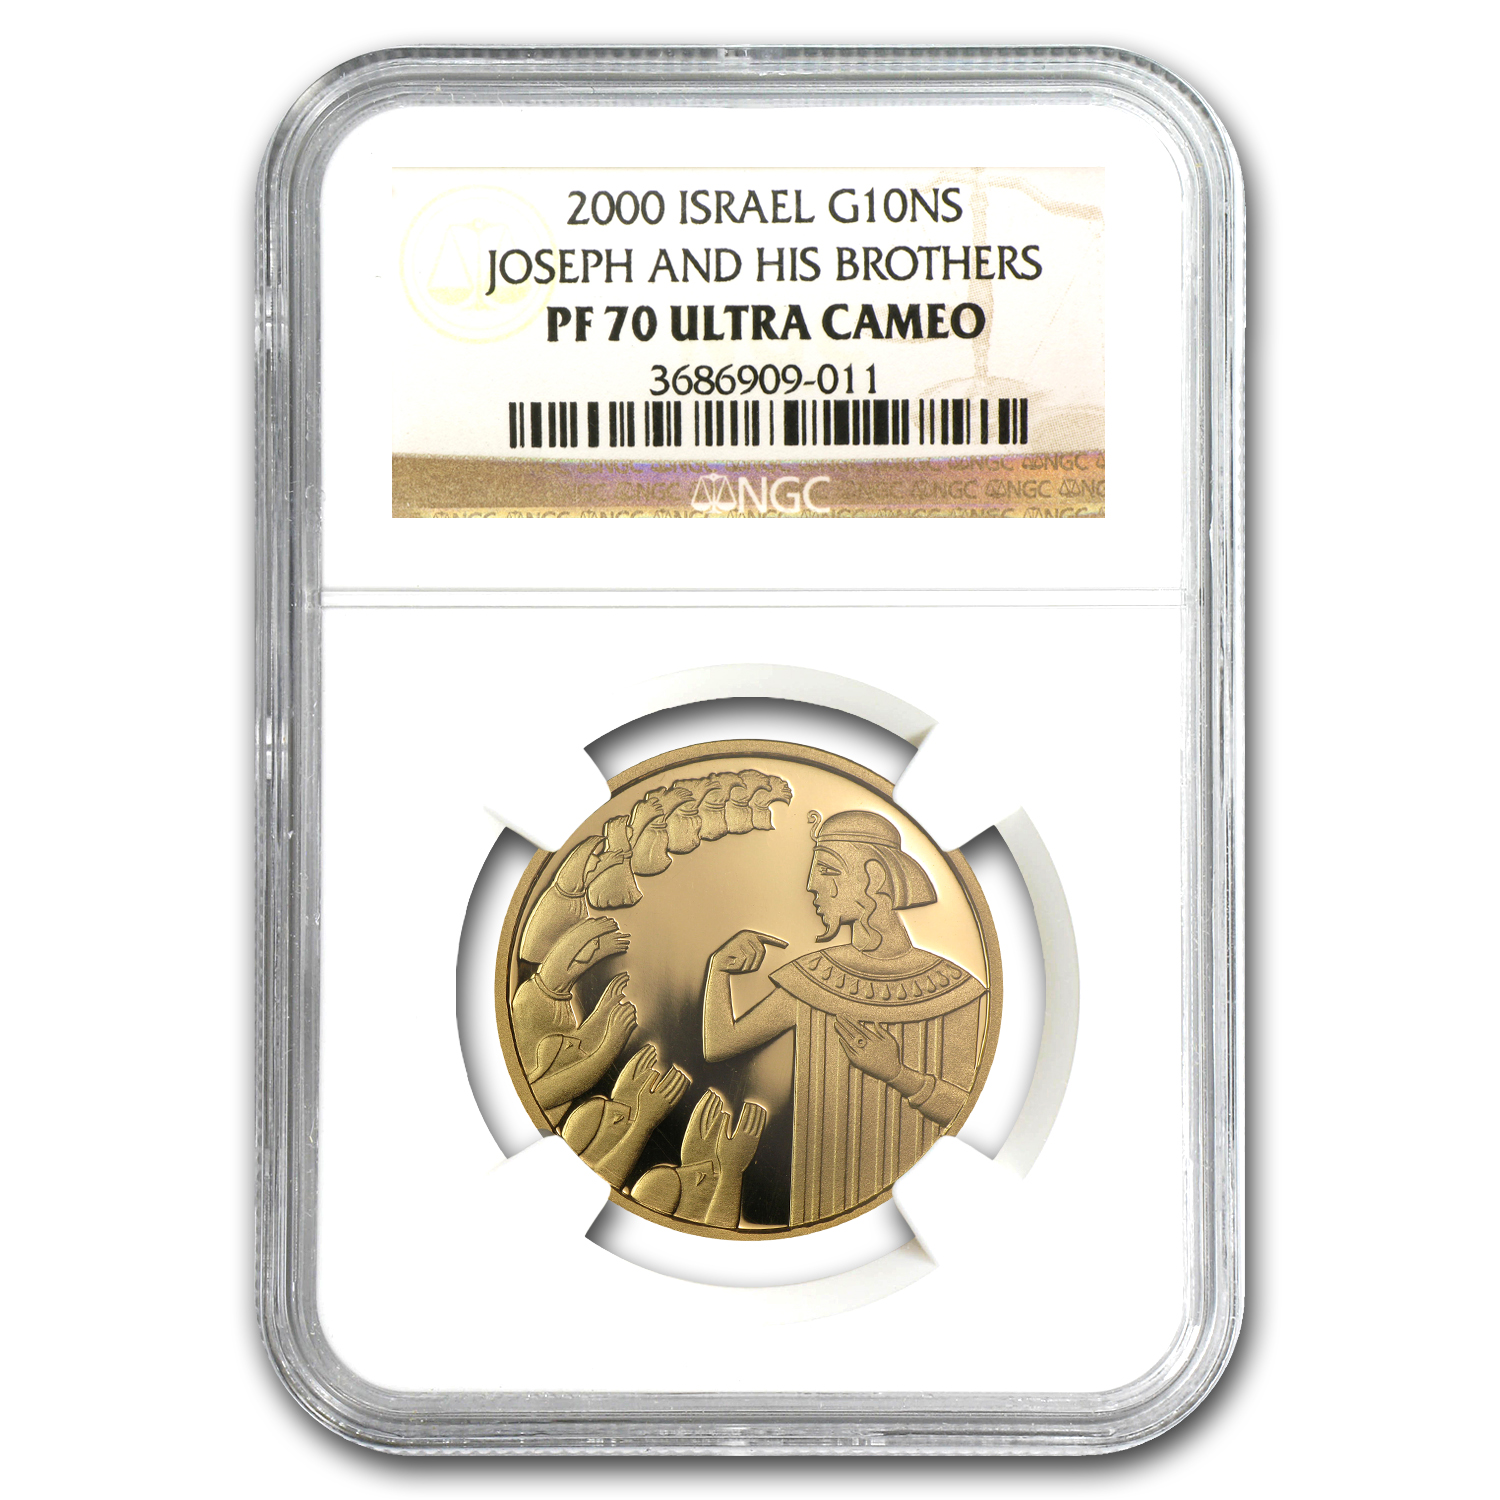 2000 Israel 1/2 oz Proof Gold Joseph & Brothers PF-70 NGC